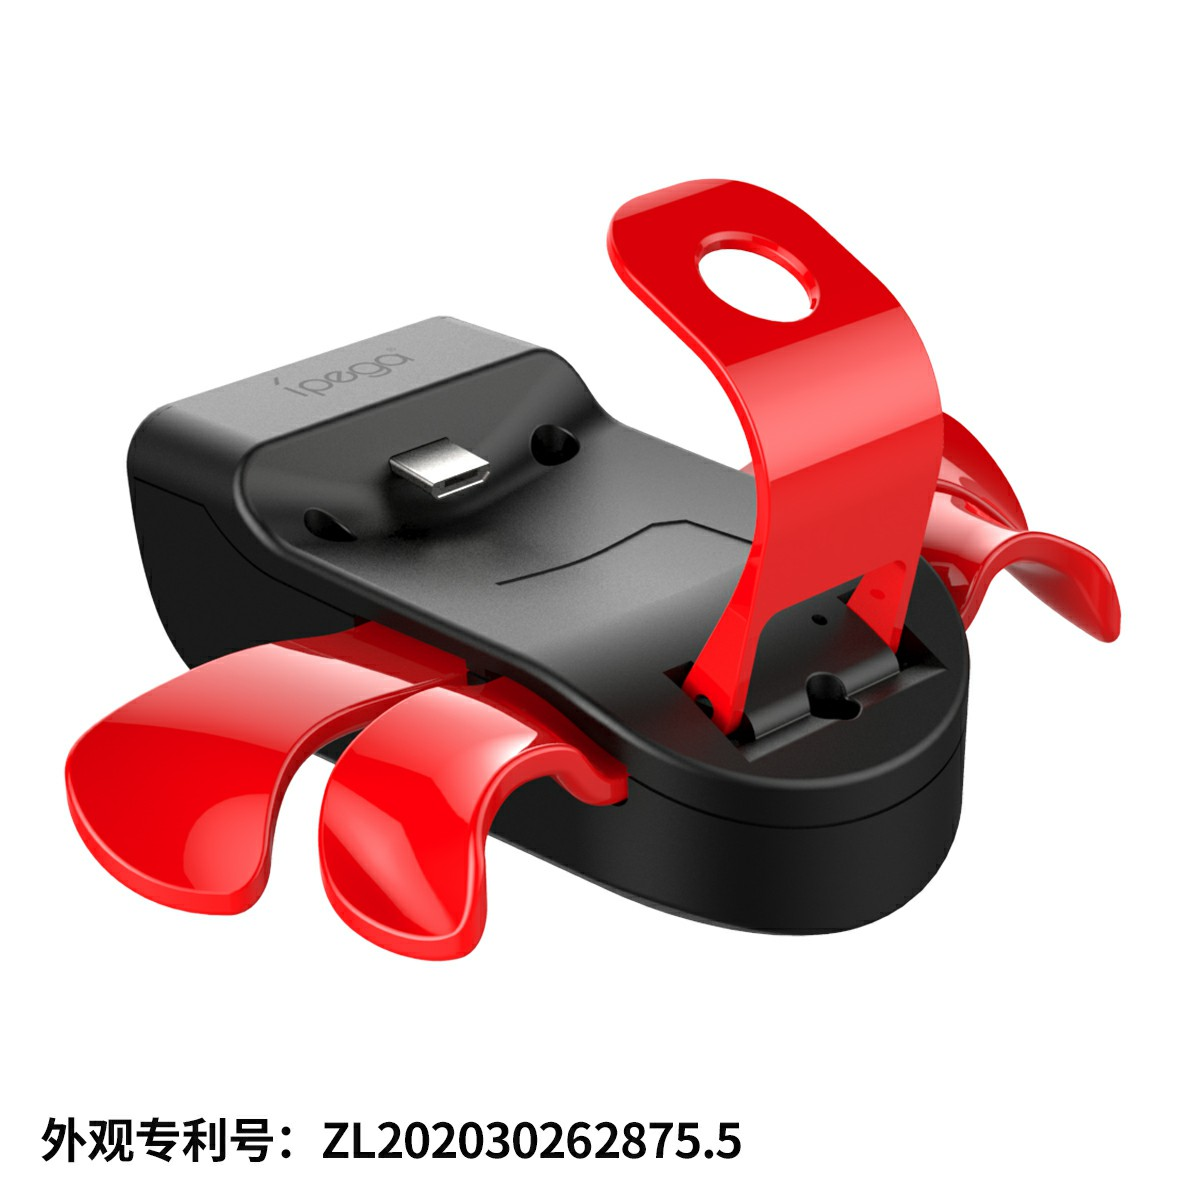 Ipega-p4013 PS4 handle key extension converter